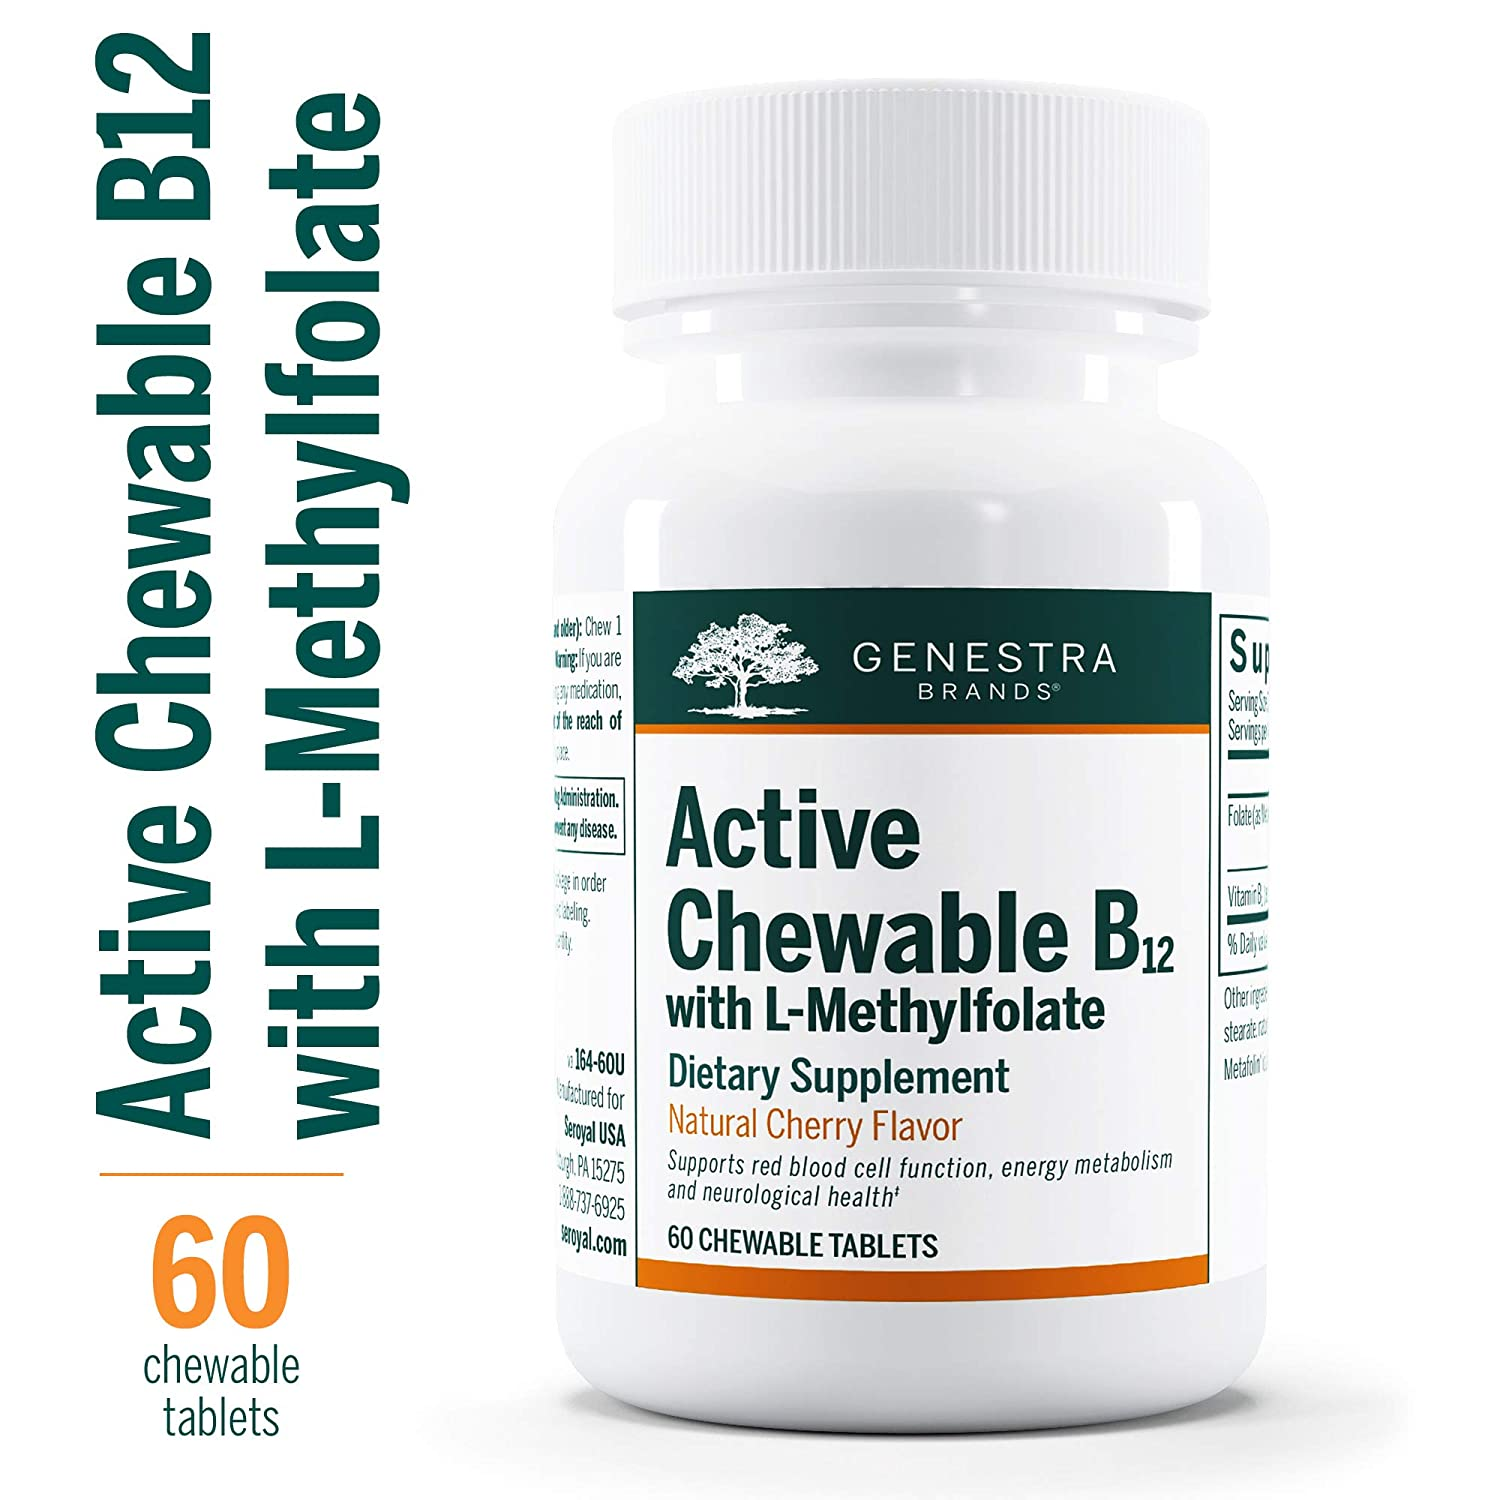 Genestra Brands – Active Chewable B12 with L-Methylfolate – Chewable Folate Supplement – Natural Cherry Flavor – 60 Chewable Tablets